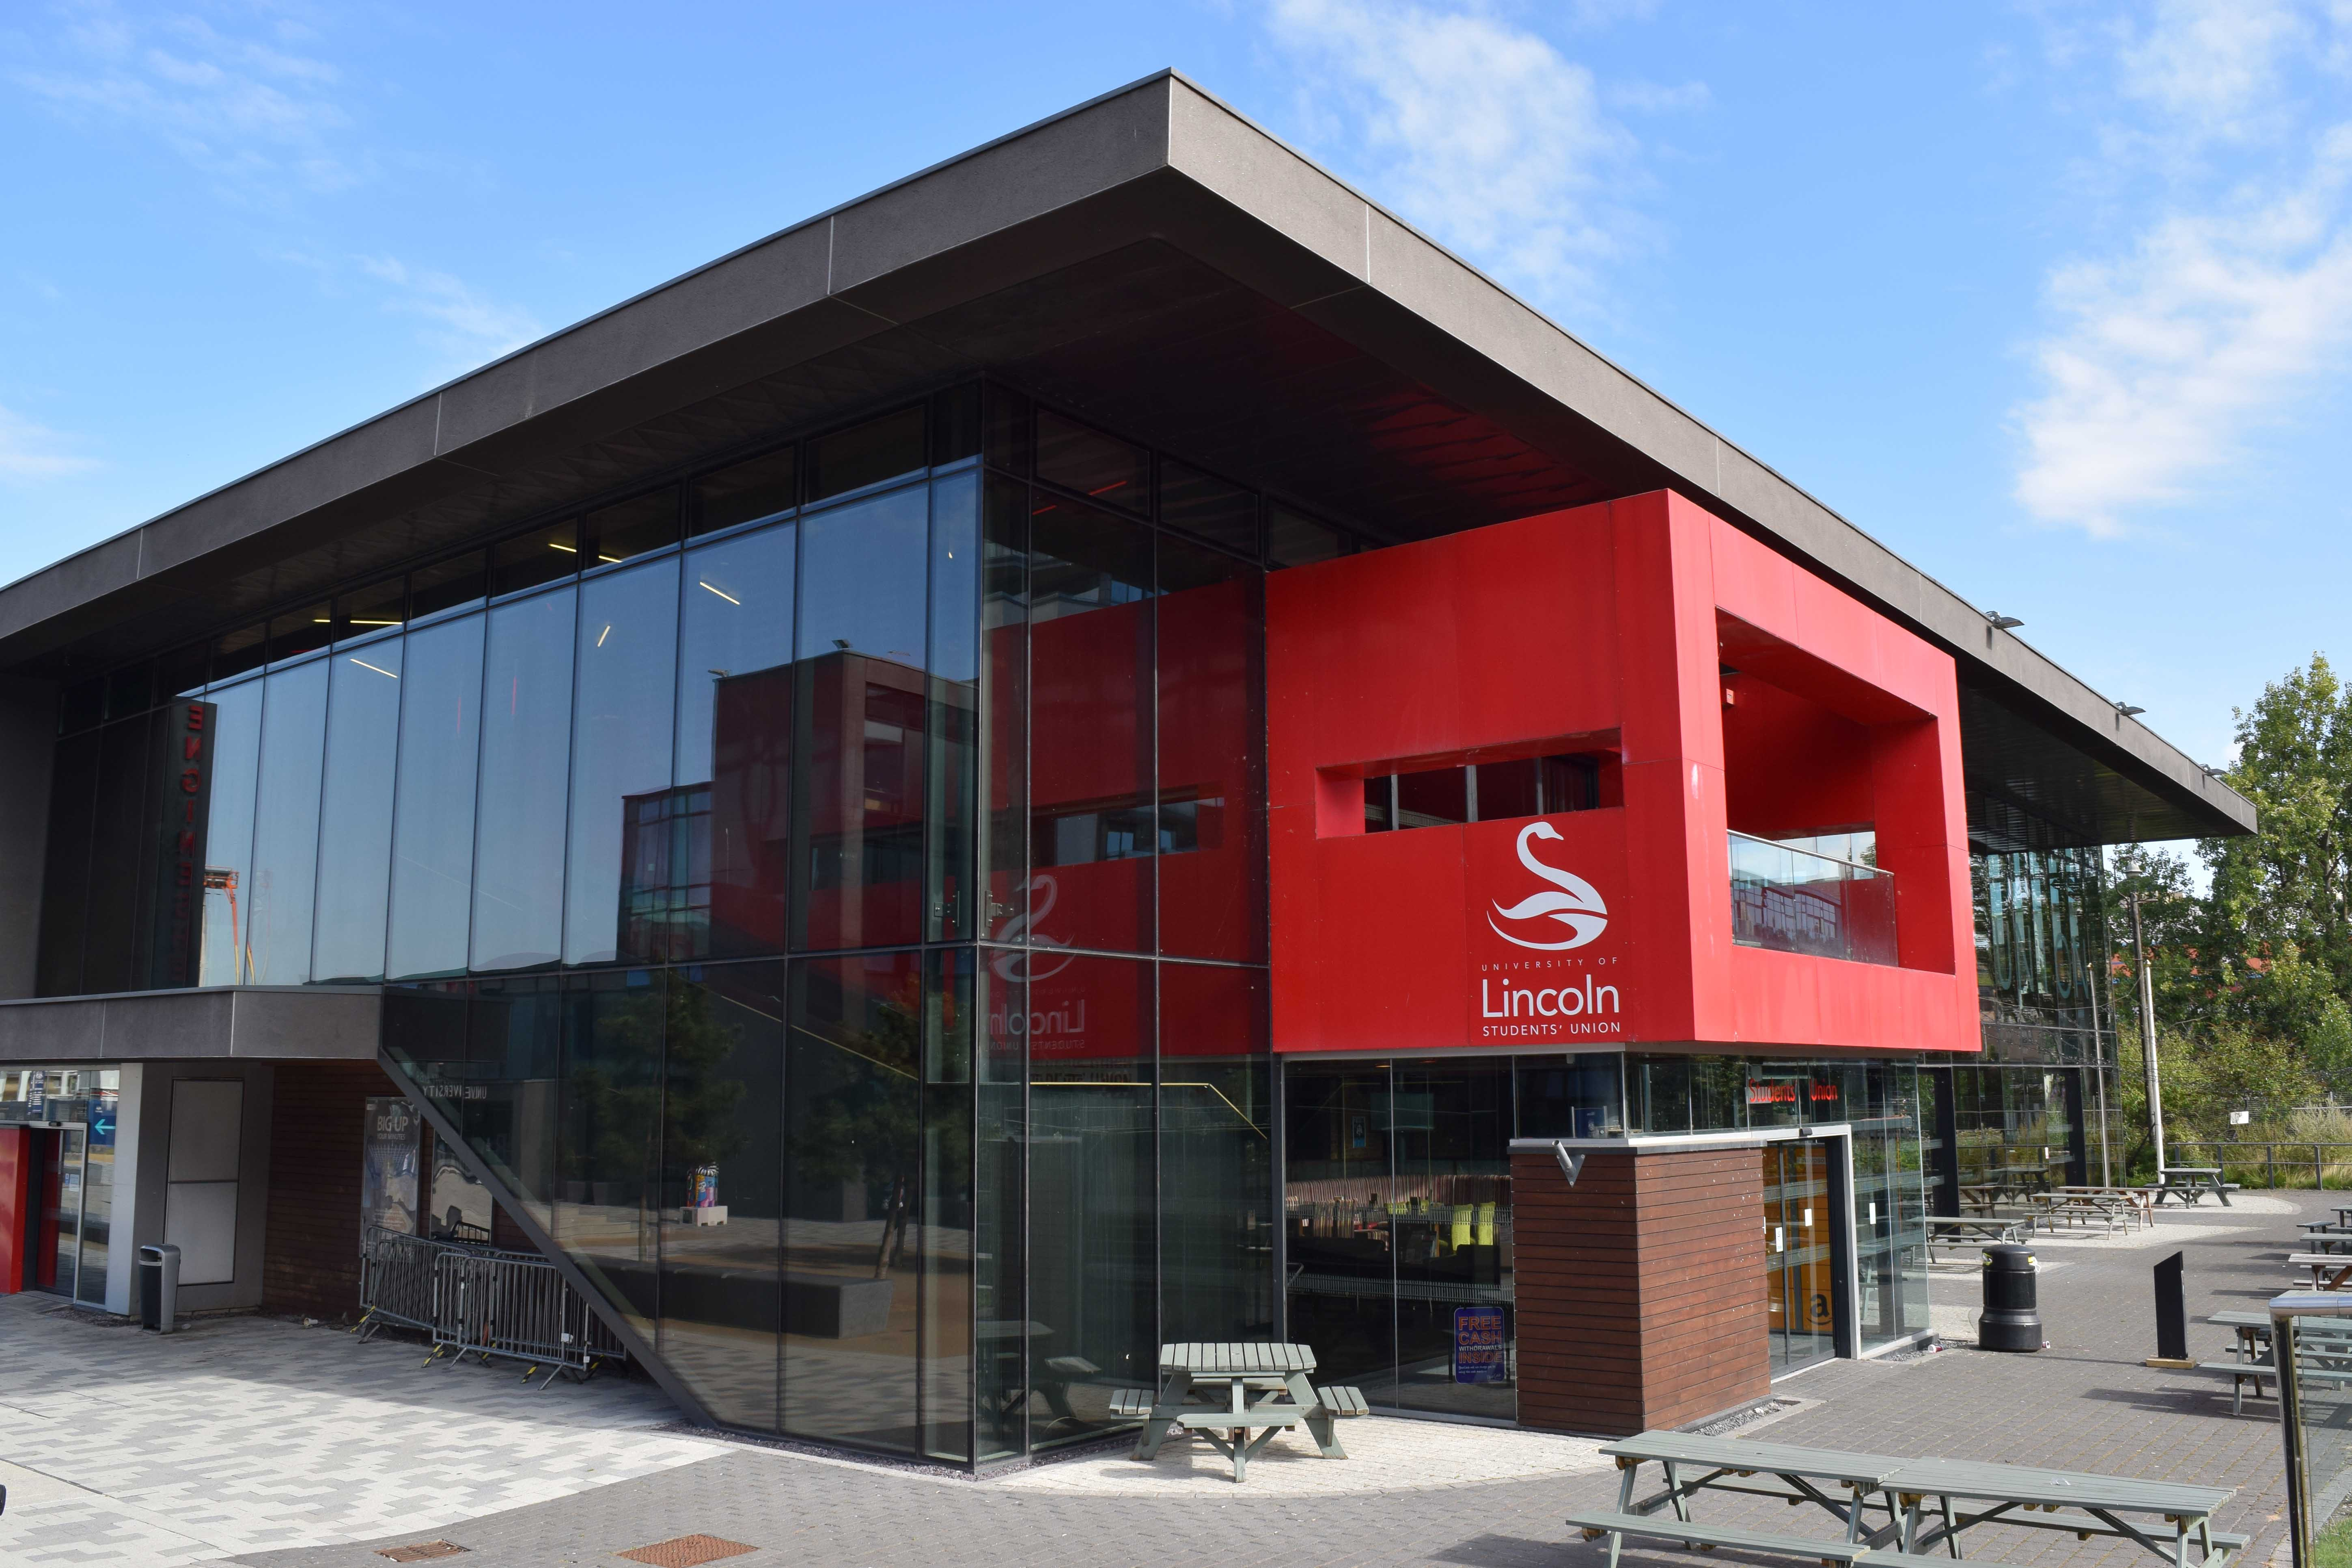 Image of a building with a glass wall and red platform